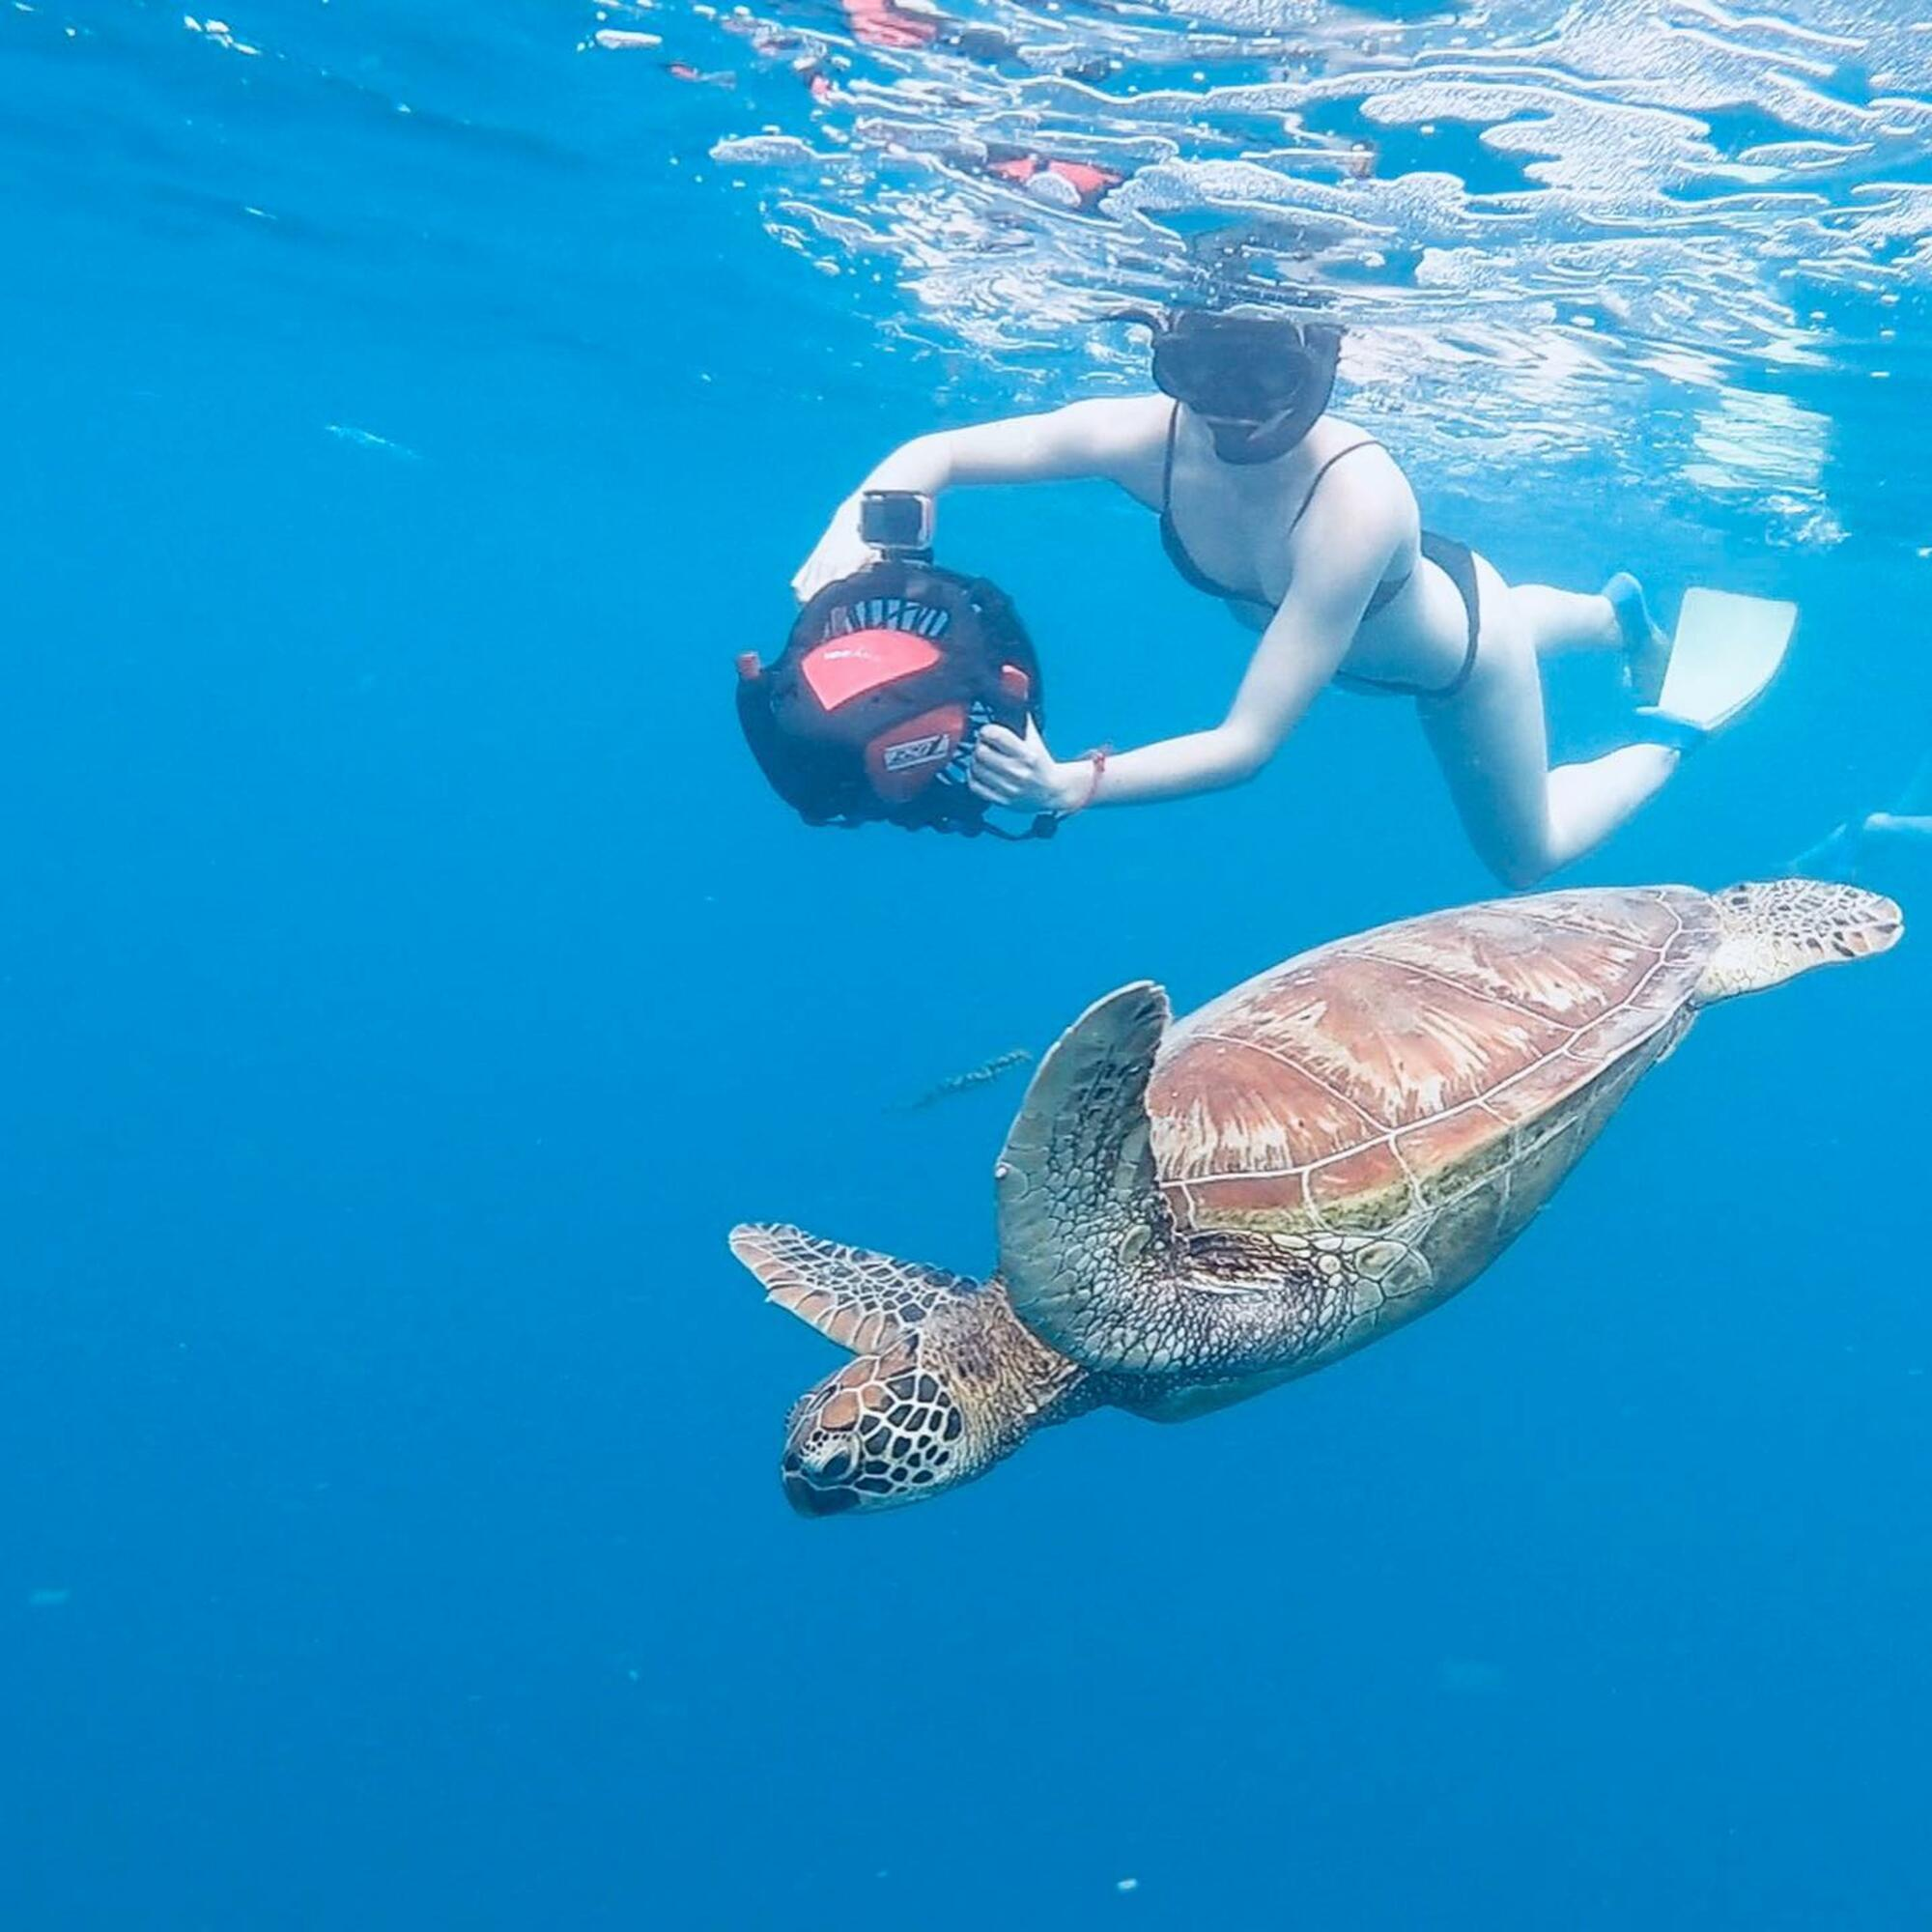 Turtle Sea Scooter Safari with Ariki Adventures Rarotonga